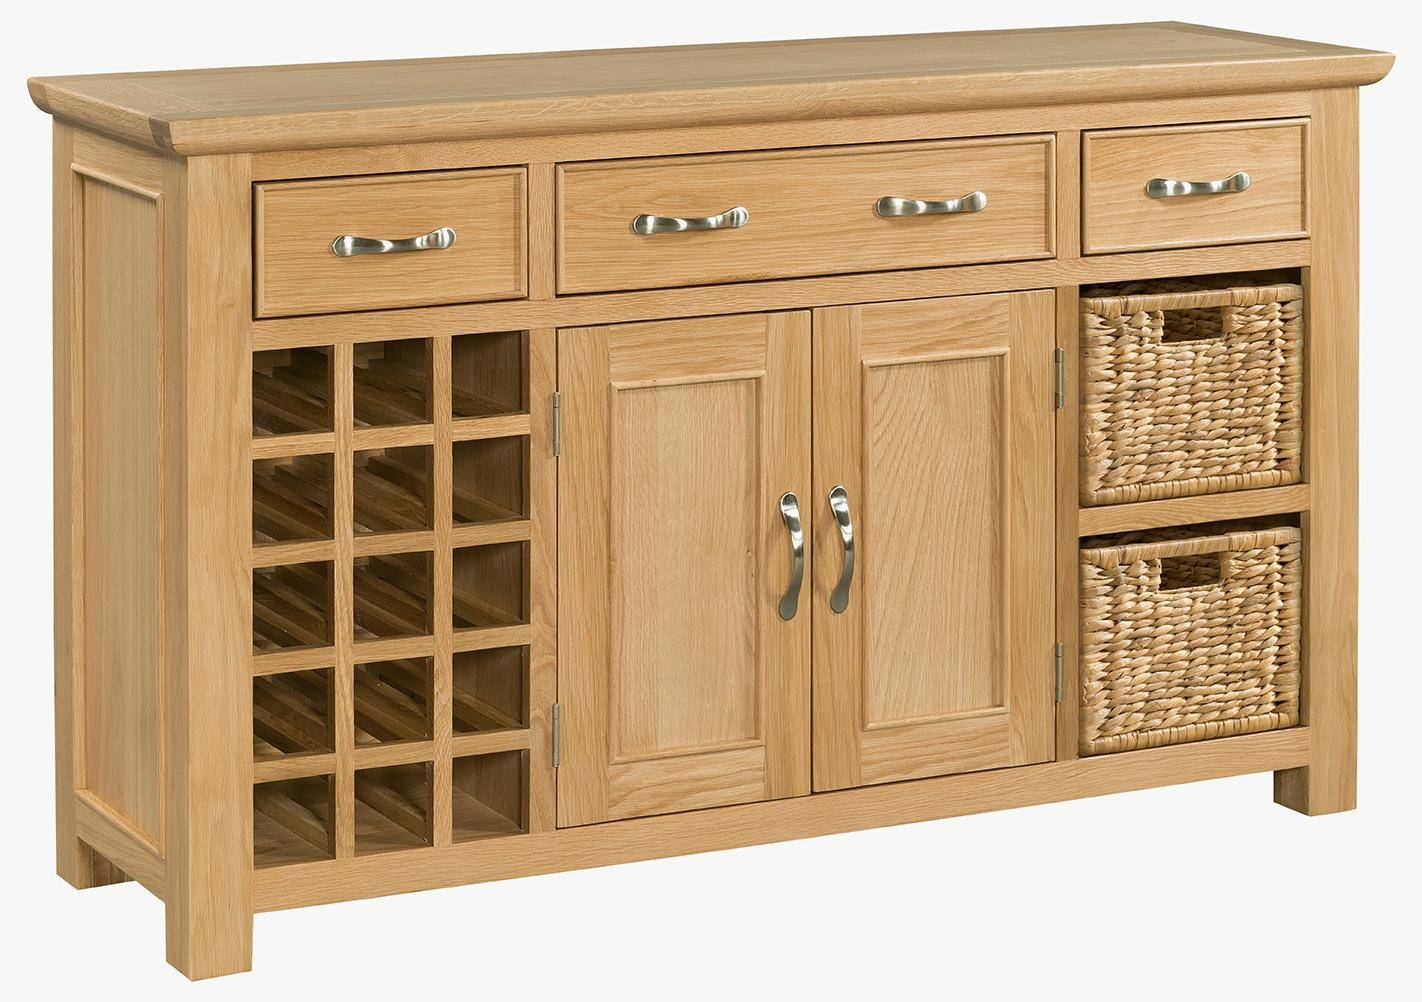 Things To Know About Sideboard With Wine Racks - Bonnie Is Good pertaining to Sideboards With Wine Racks (Image 28 of 30)